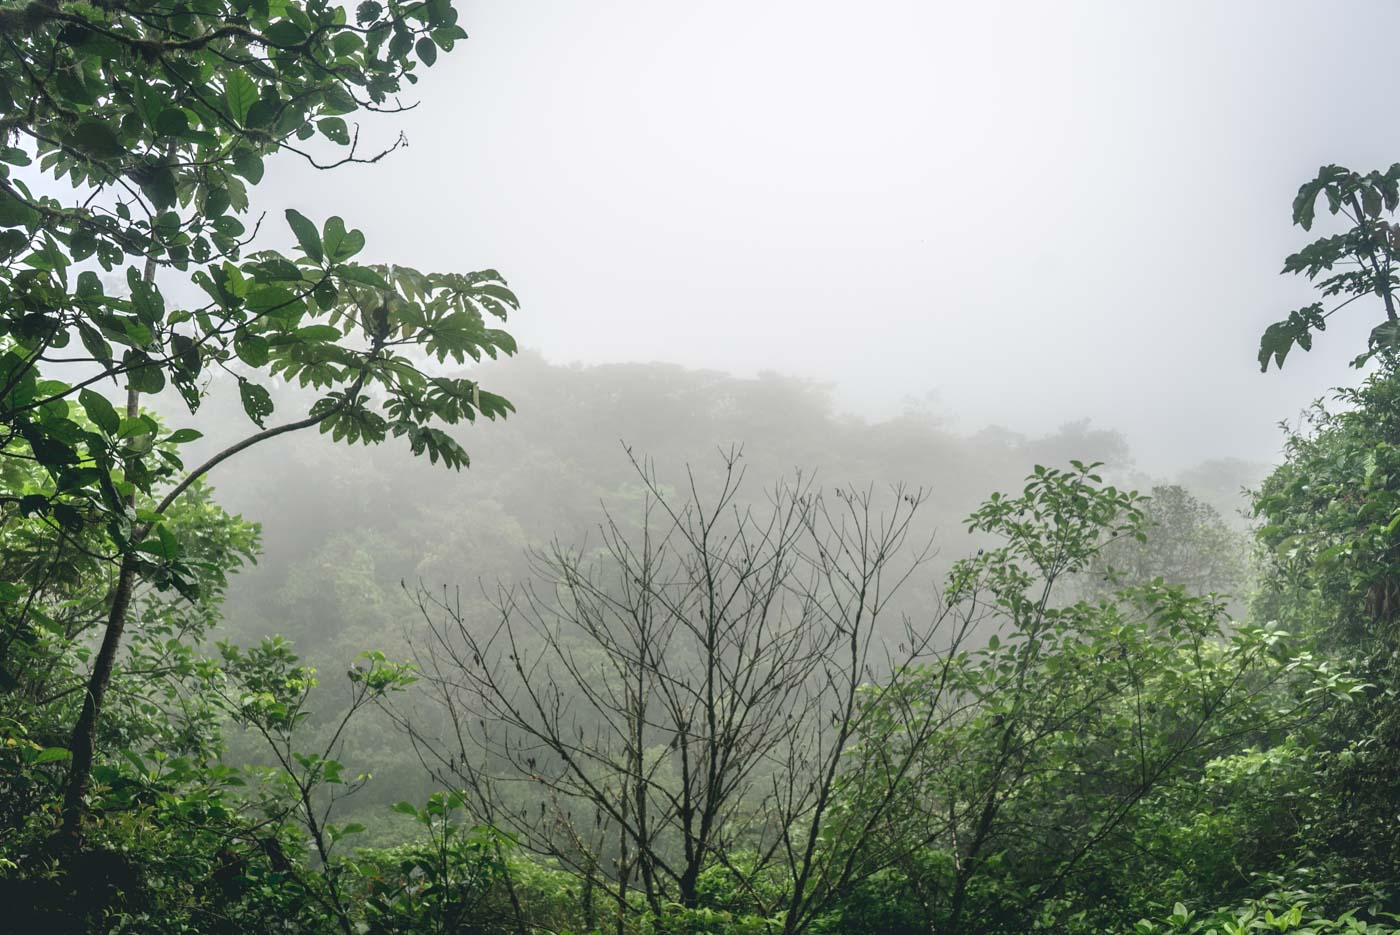 The lookout (mirador) at the Tenorio National Park. Best viewed in clear weather